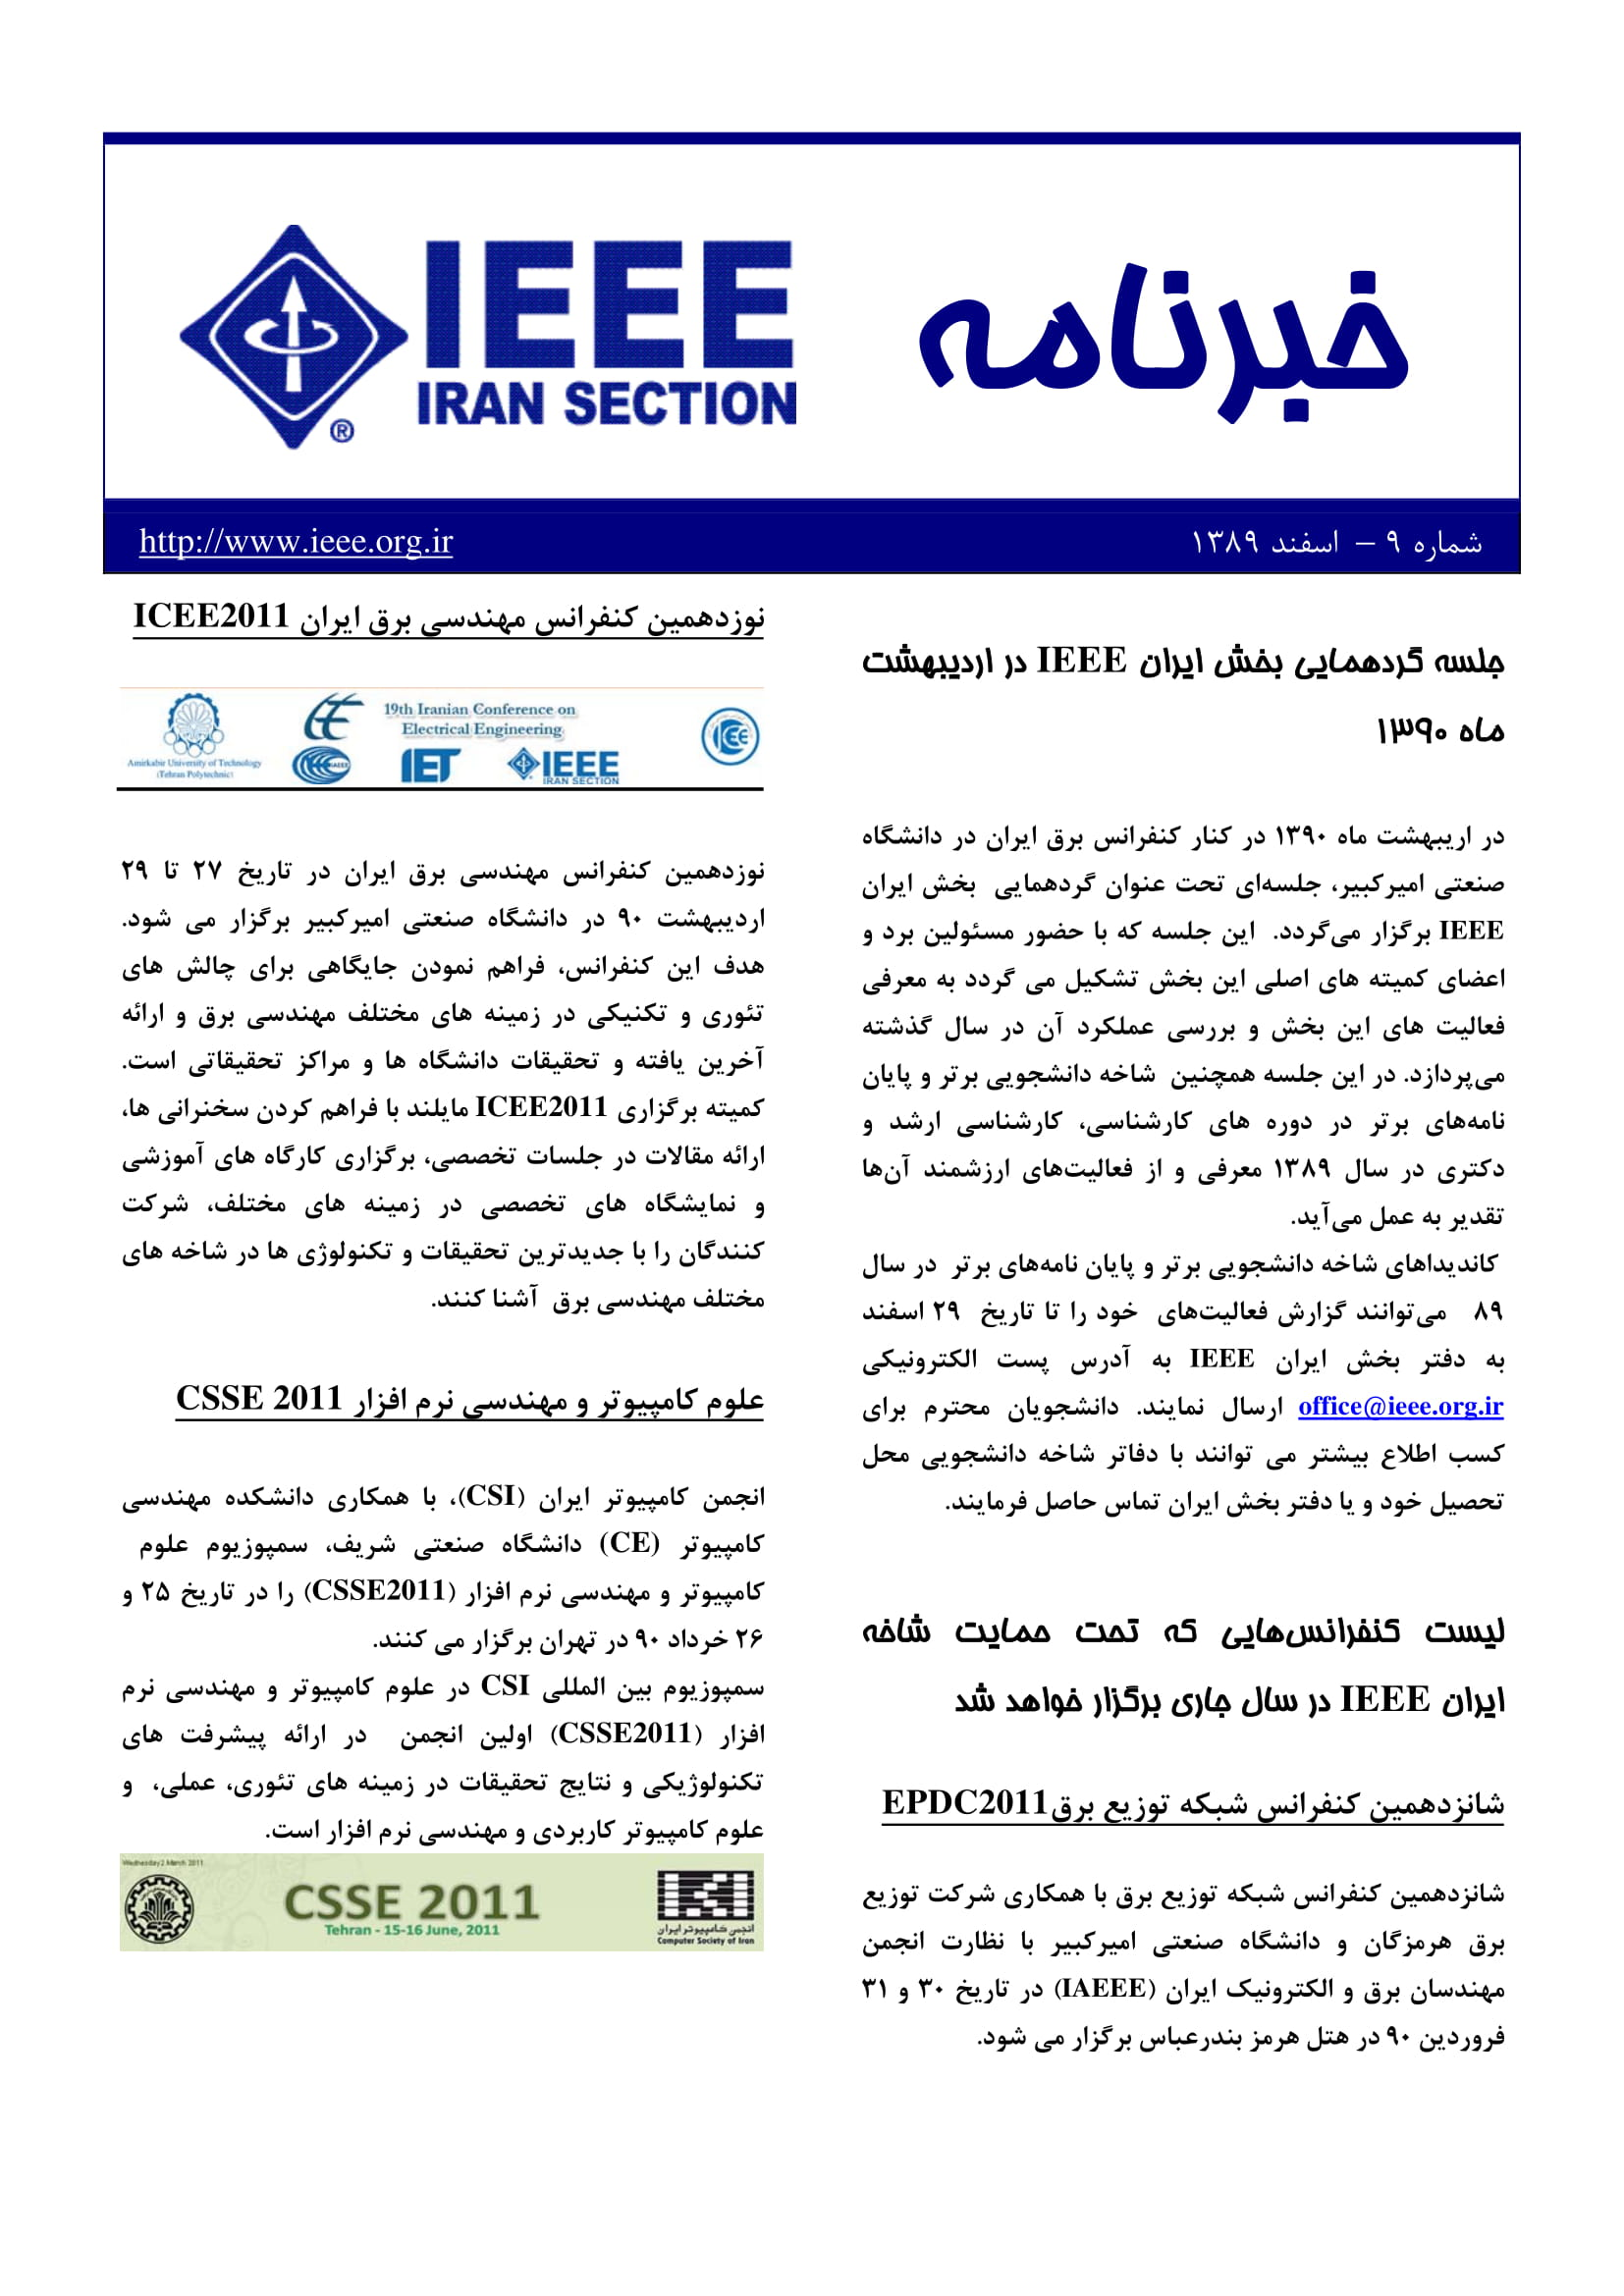 IEEE-Iran-Section_Newsletter_Esfand_1389_No.9-1